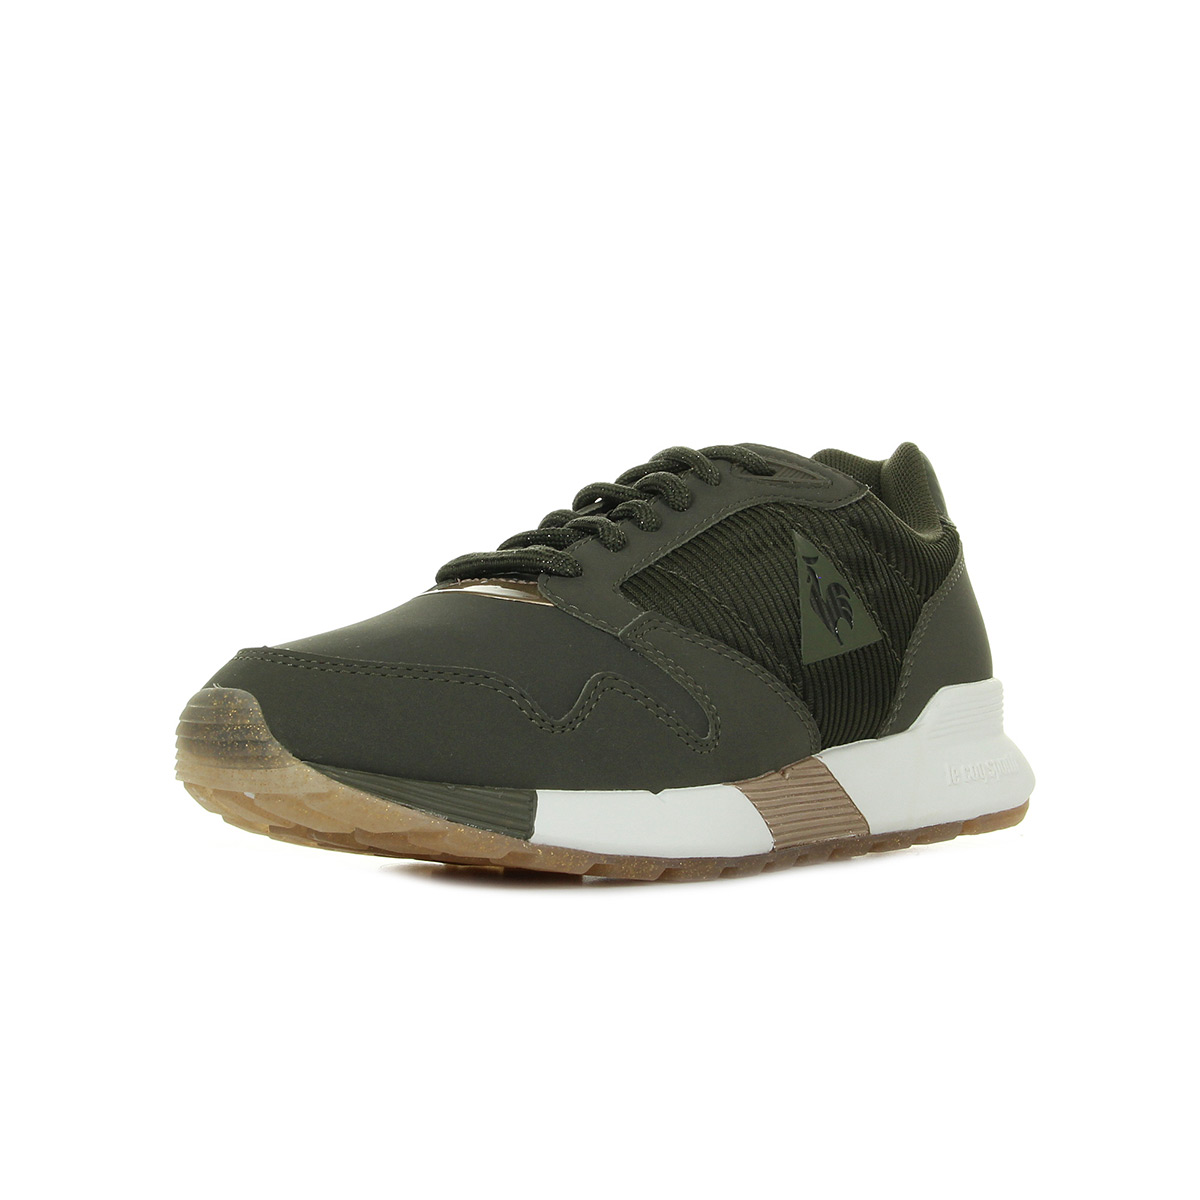 Baskets Le Coq Sportif Omega X W Striped Sock Metallic - 1721179 zBUbXBcf